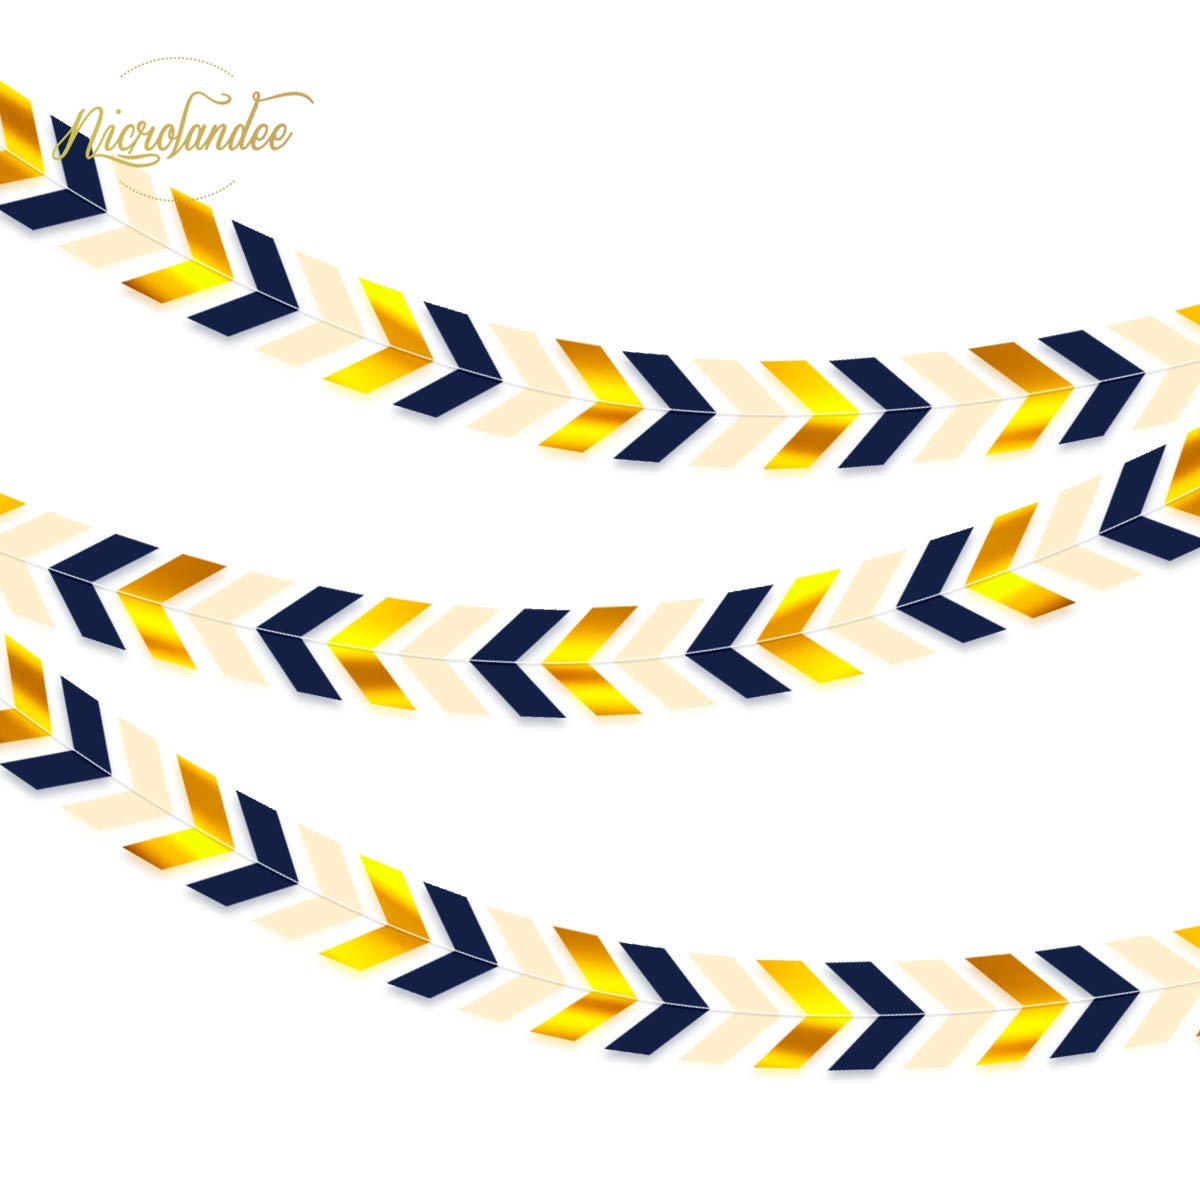 Arrow garland clipart graphic freeuse NICROLANDEE 3pcs Blue and Gold Party Banner Navy Blue Arrow Paper Banner  Garland Navigation Design Wall Window Streamer for Baby Shower Birthday ... graphic freeuse